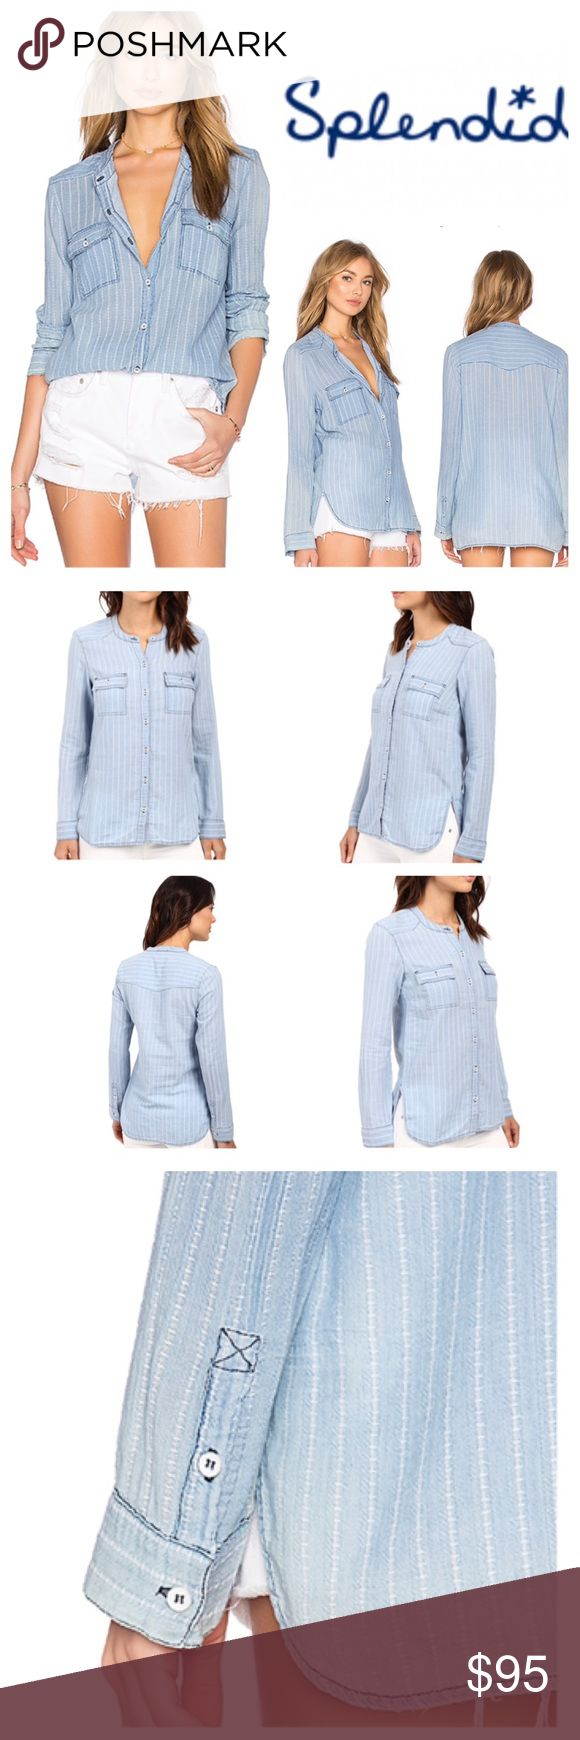 Splendid Button Up Shirt A sleek button-up with a double-styled chic. Relaxed fit. Ultra-soft chambray shirt flaunts an allover stripe. Collarless design. Long sleeve features button cuffs. Dual chest pockets with flap closures. Front button closure. Shirttail hemline. 100% cotton. Hand wash cold, lay flat to dry. Splendid Tops